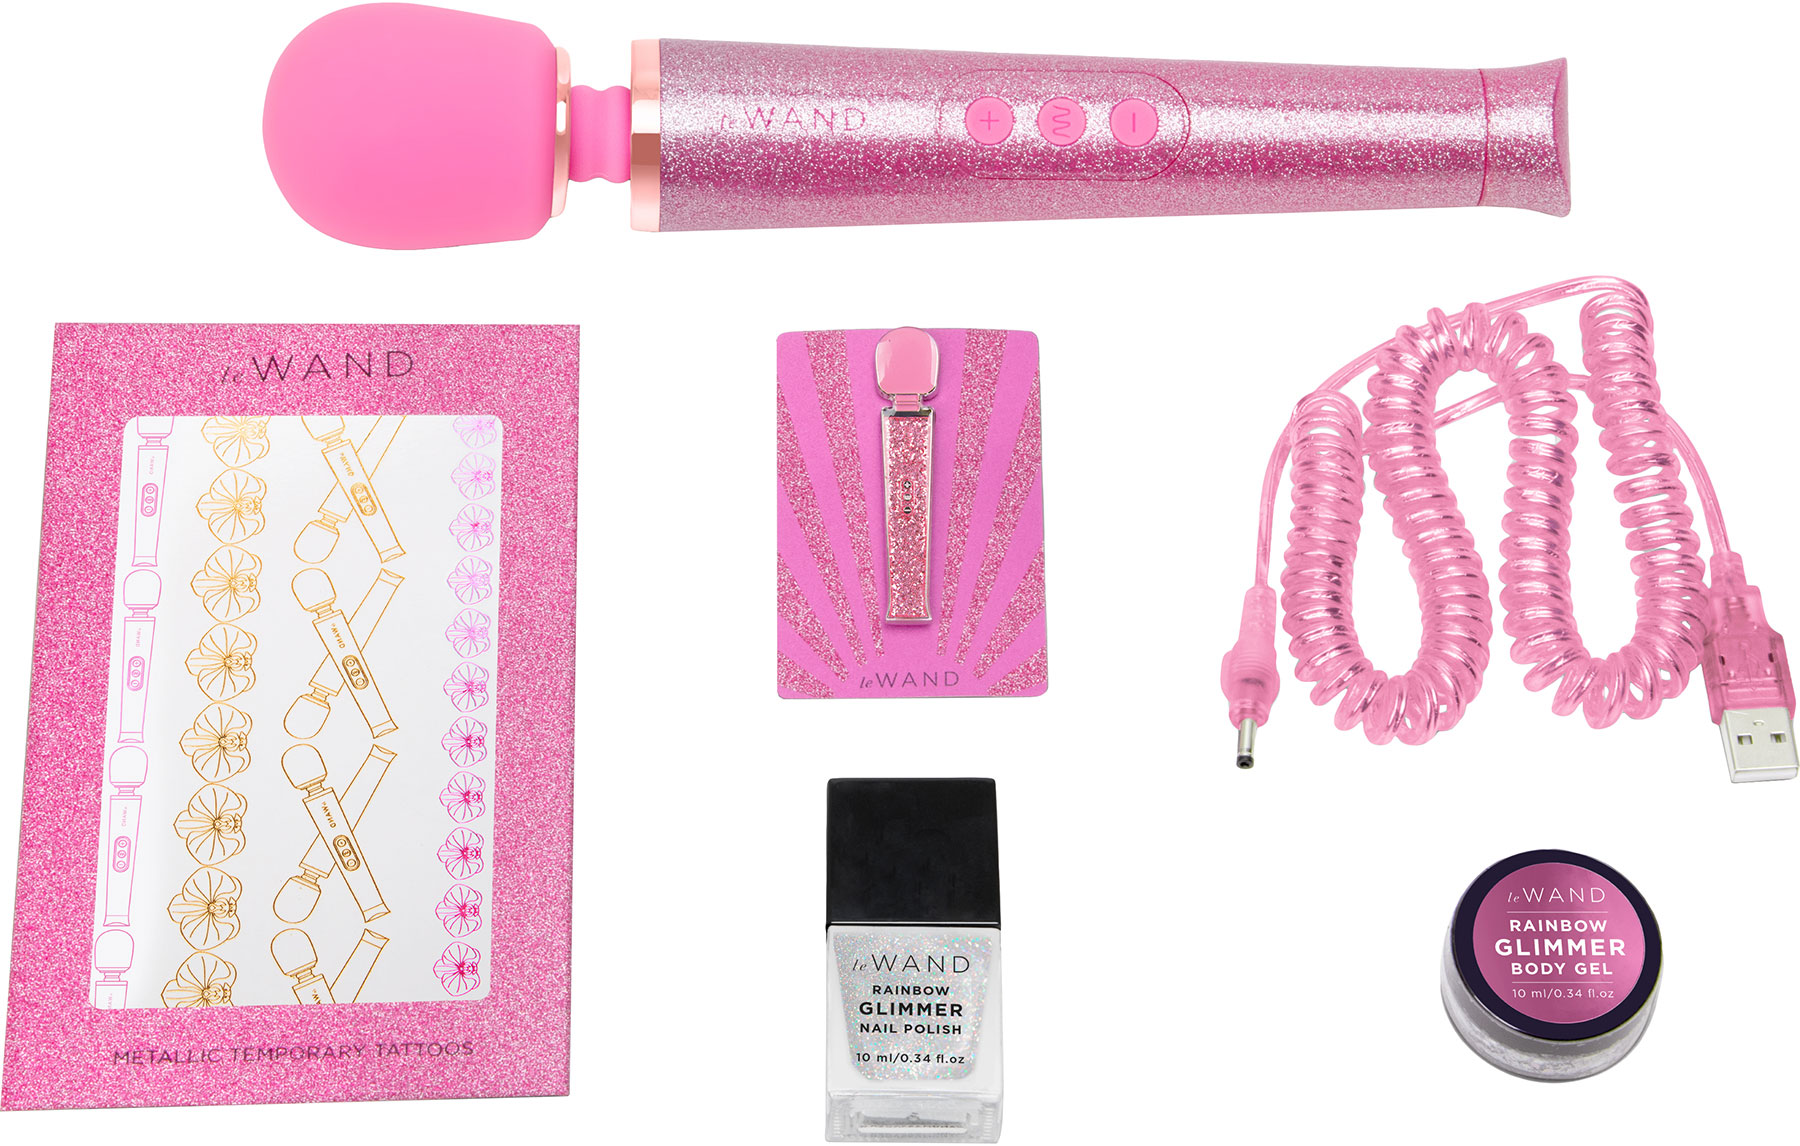 Le Wand Petite All That Glimmers Special Edition Rechargeable Vibrating Body Massager - What's Included